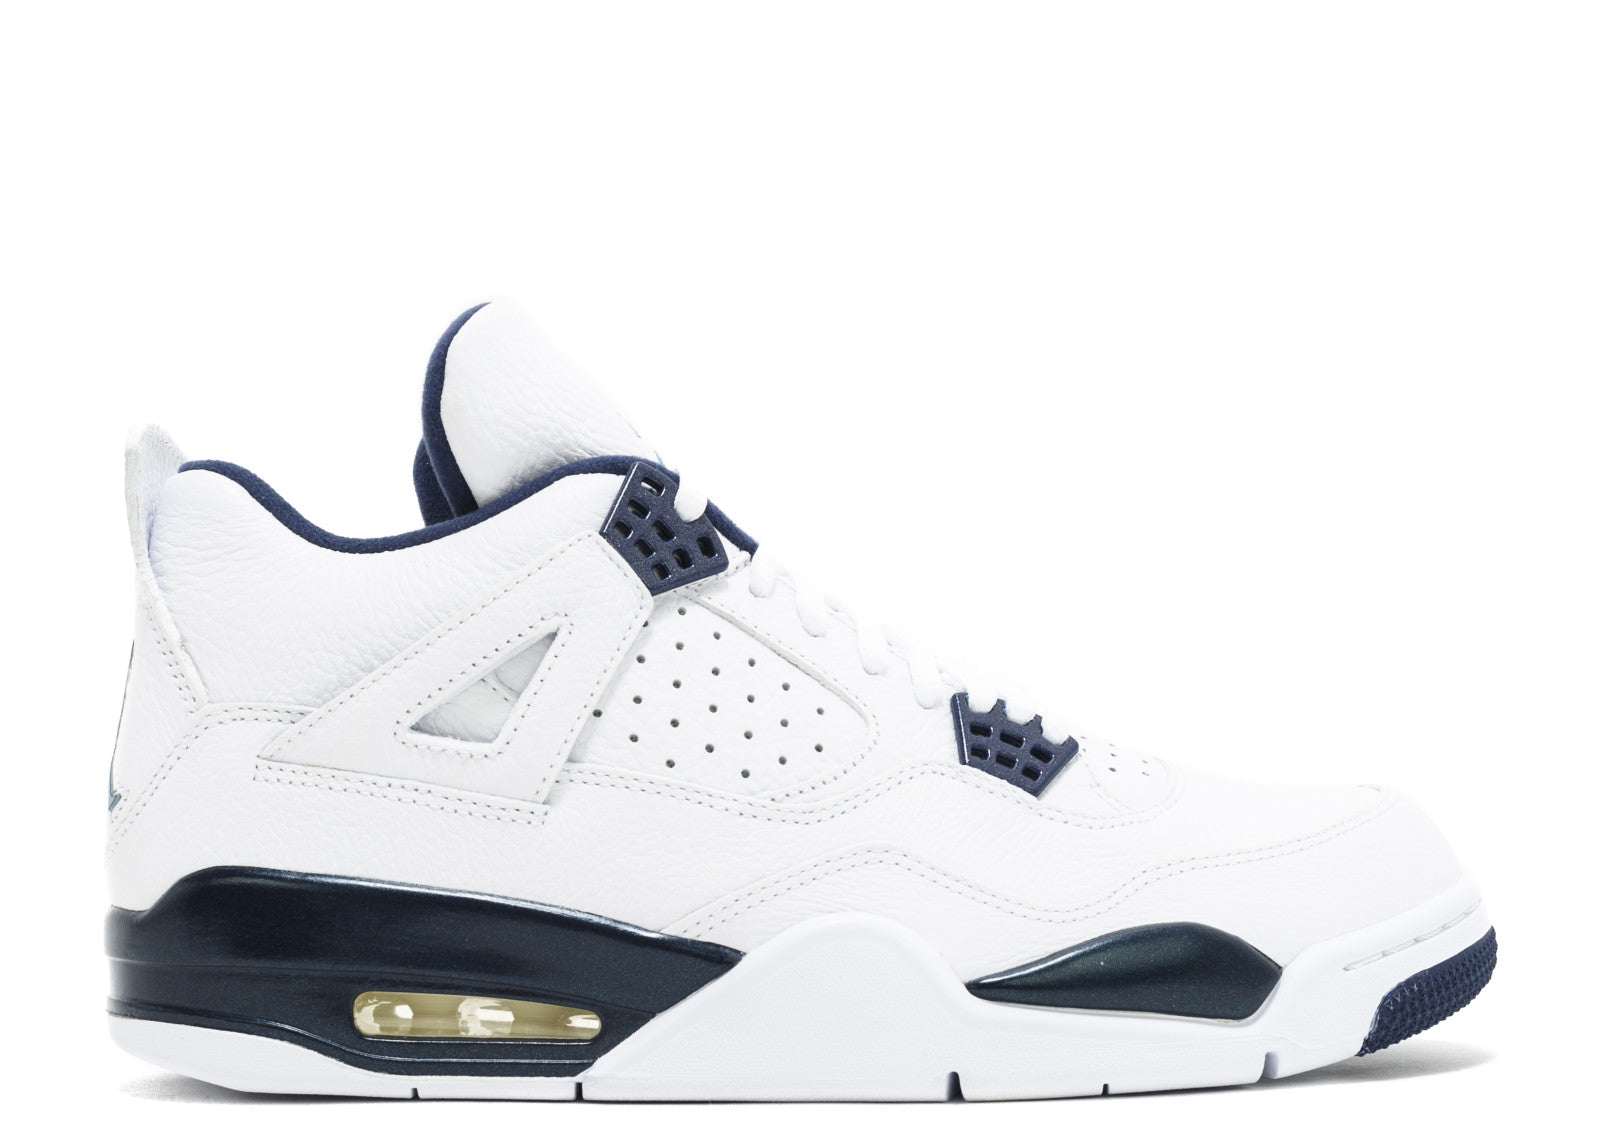 Nike Air Jordan 4 Retro LS 'Columbia'